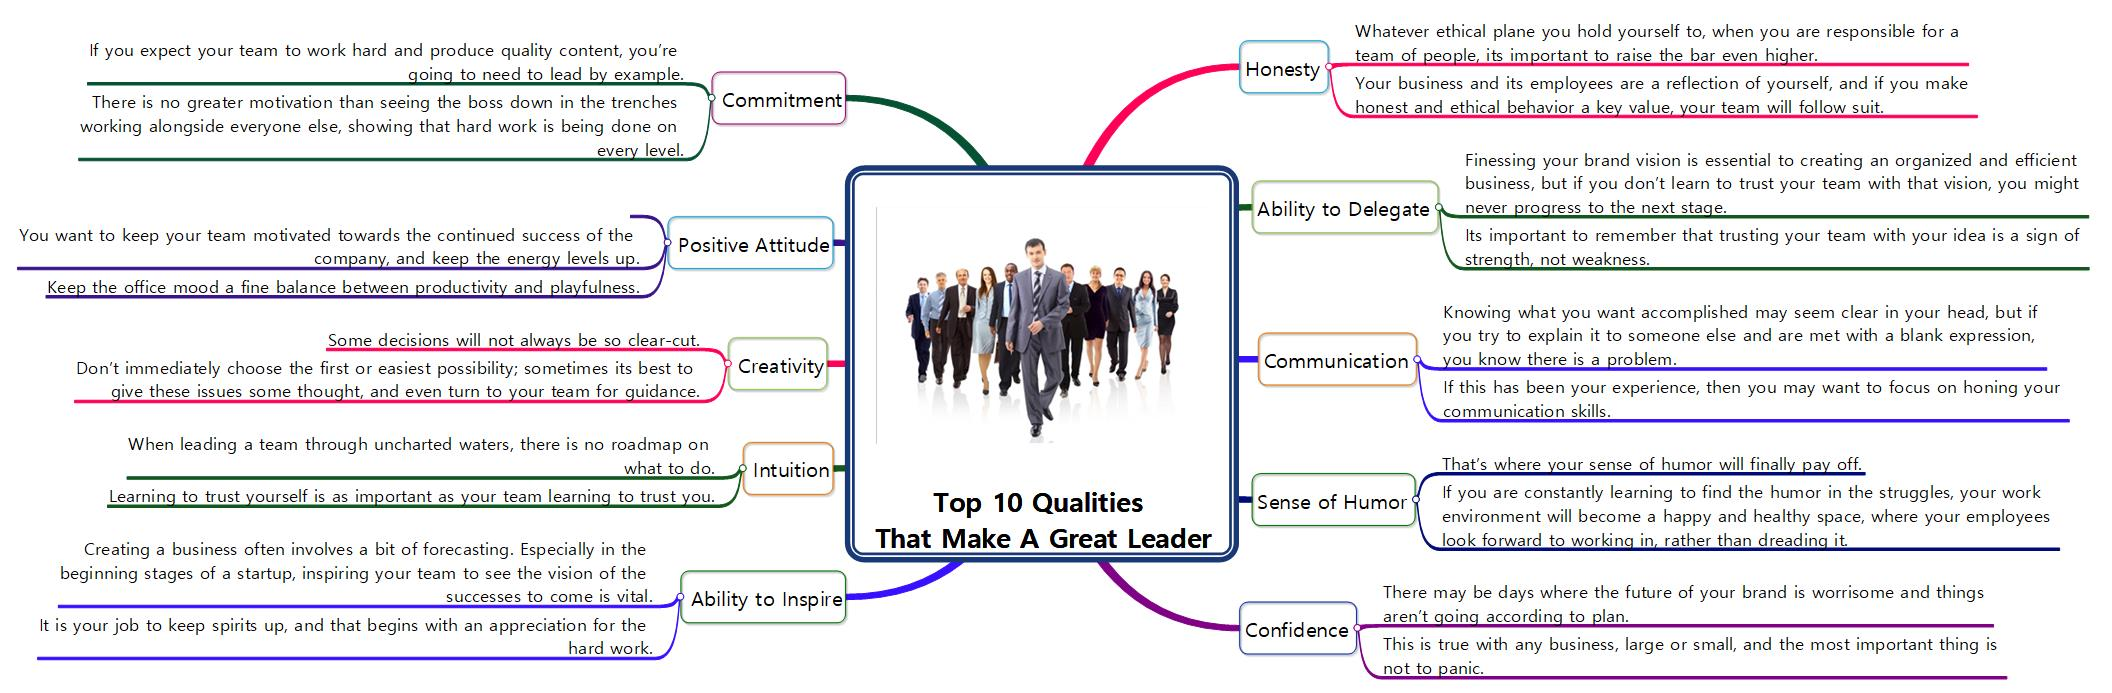 Top 10 Qualities  That Make A Great Leader 이미지